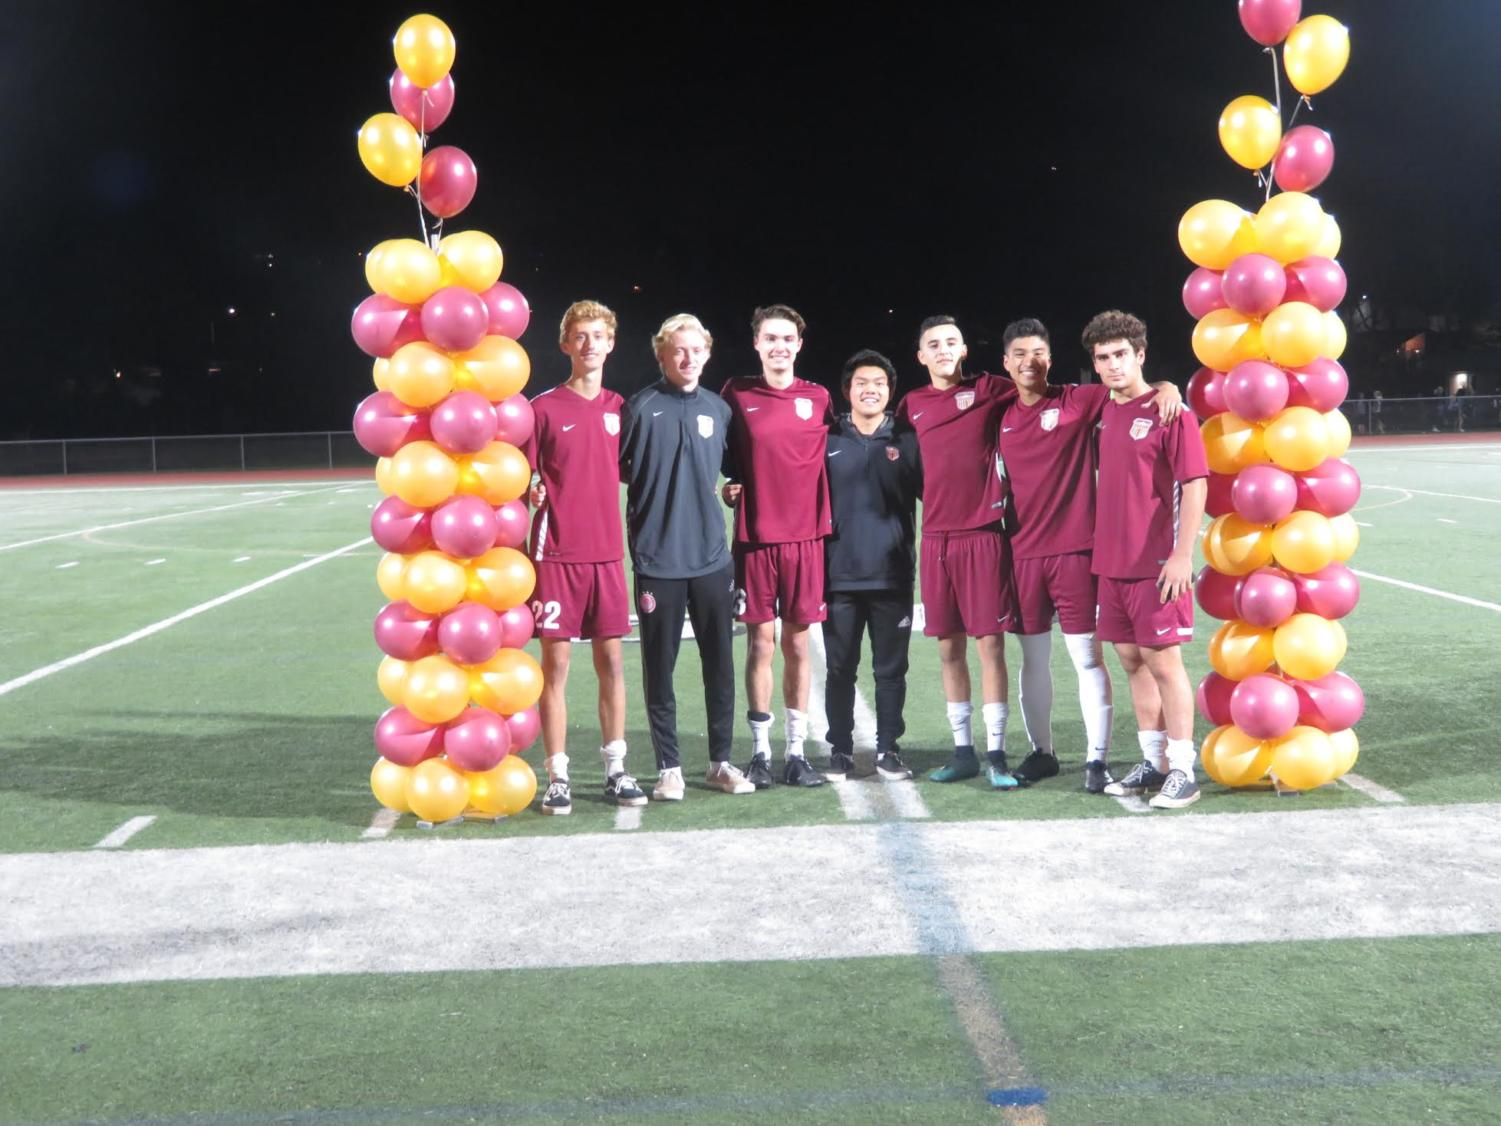 Men's Soccer playing their last league game as well as their senior night on Feb. 1 2019. The boys are excited for their first round of CIF.